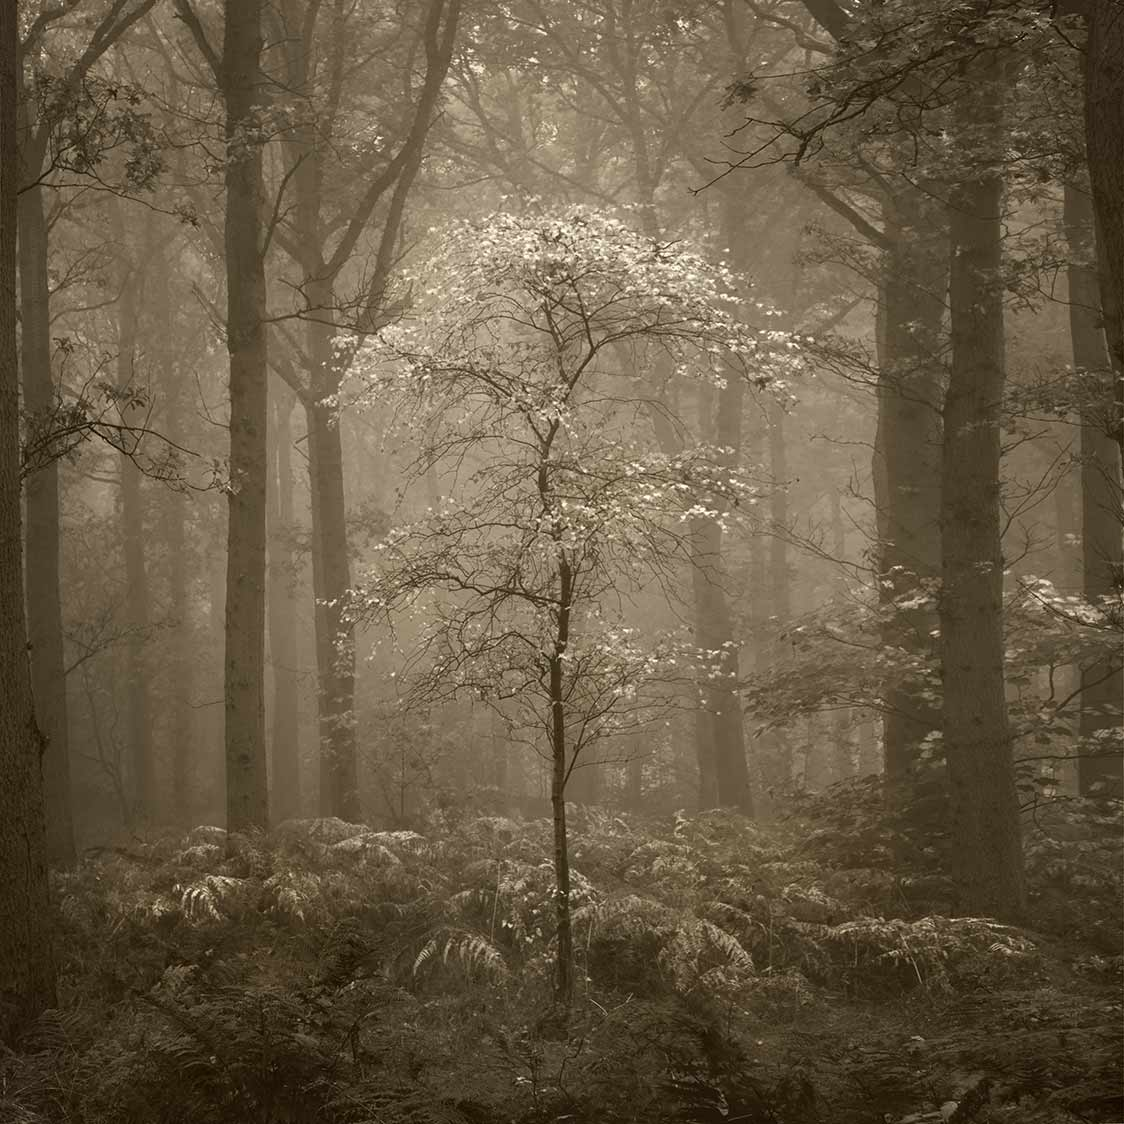 FOG AND FOREST - Swinsty, Yorkshire